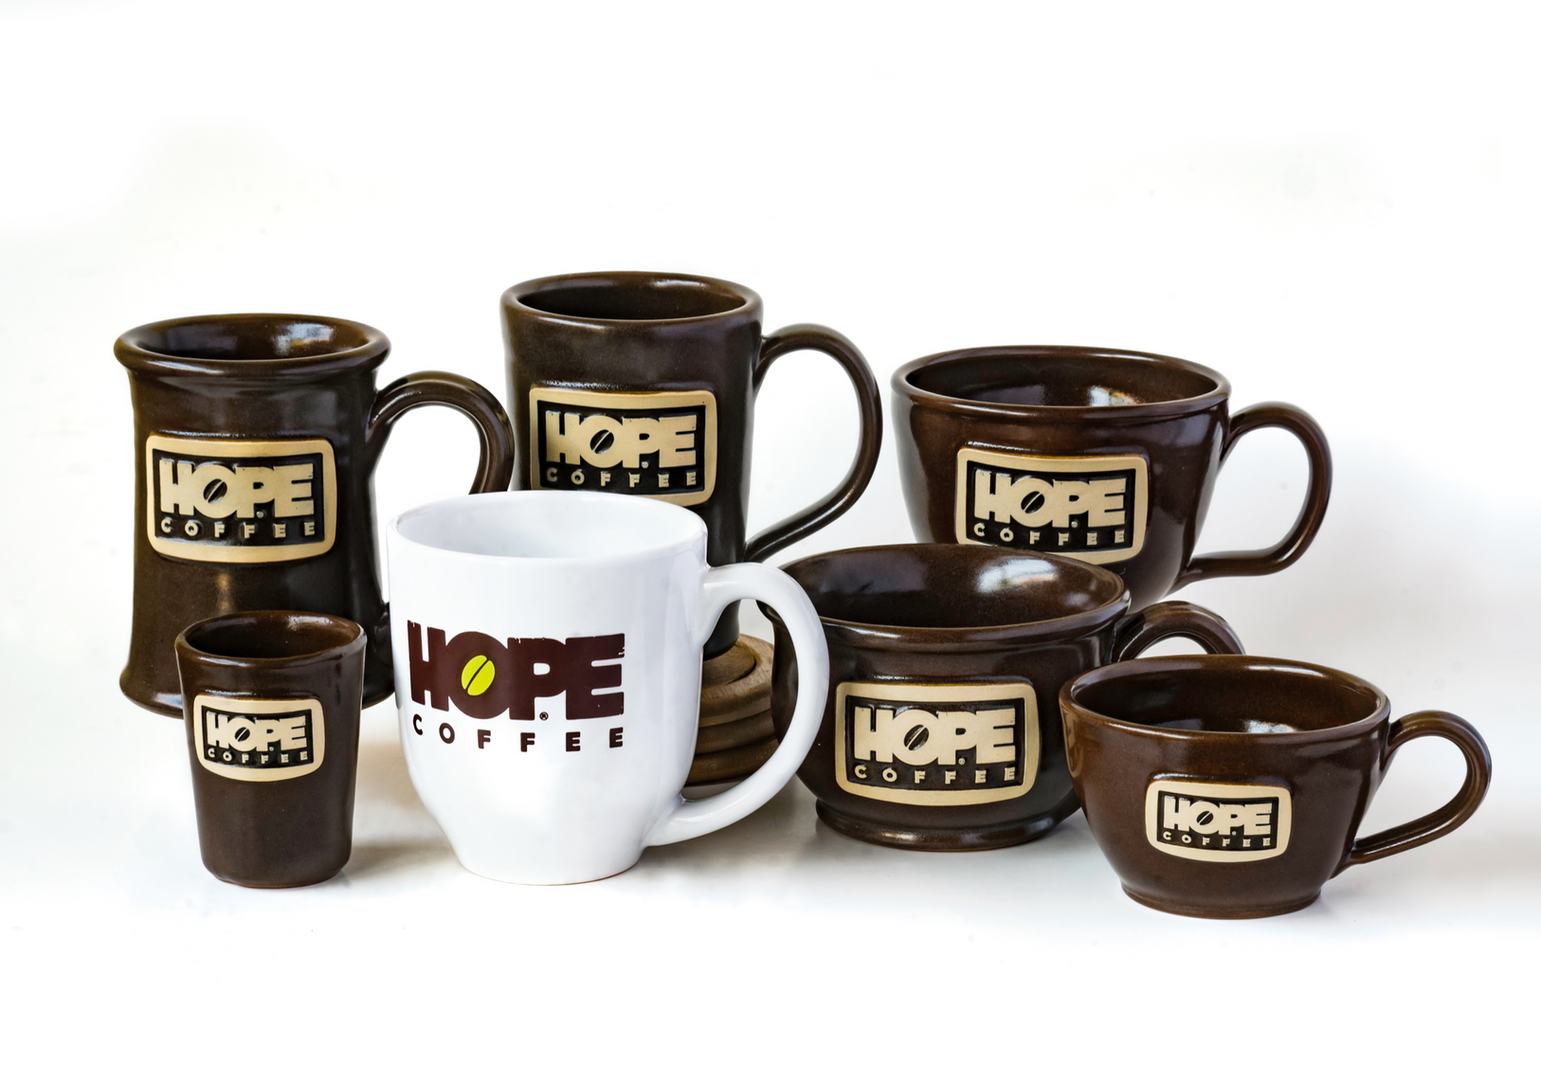 HOPE Coffee Mugs